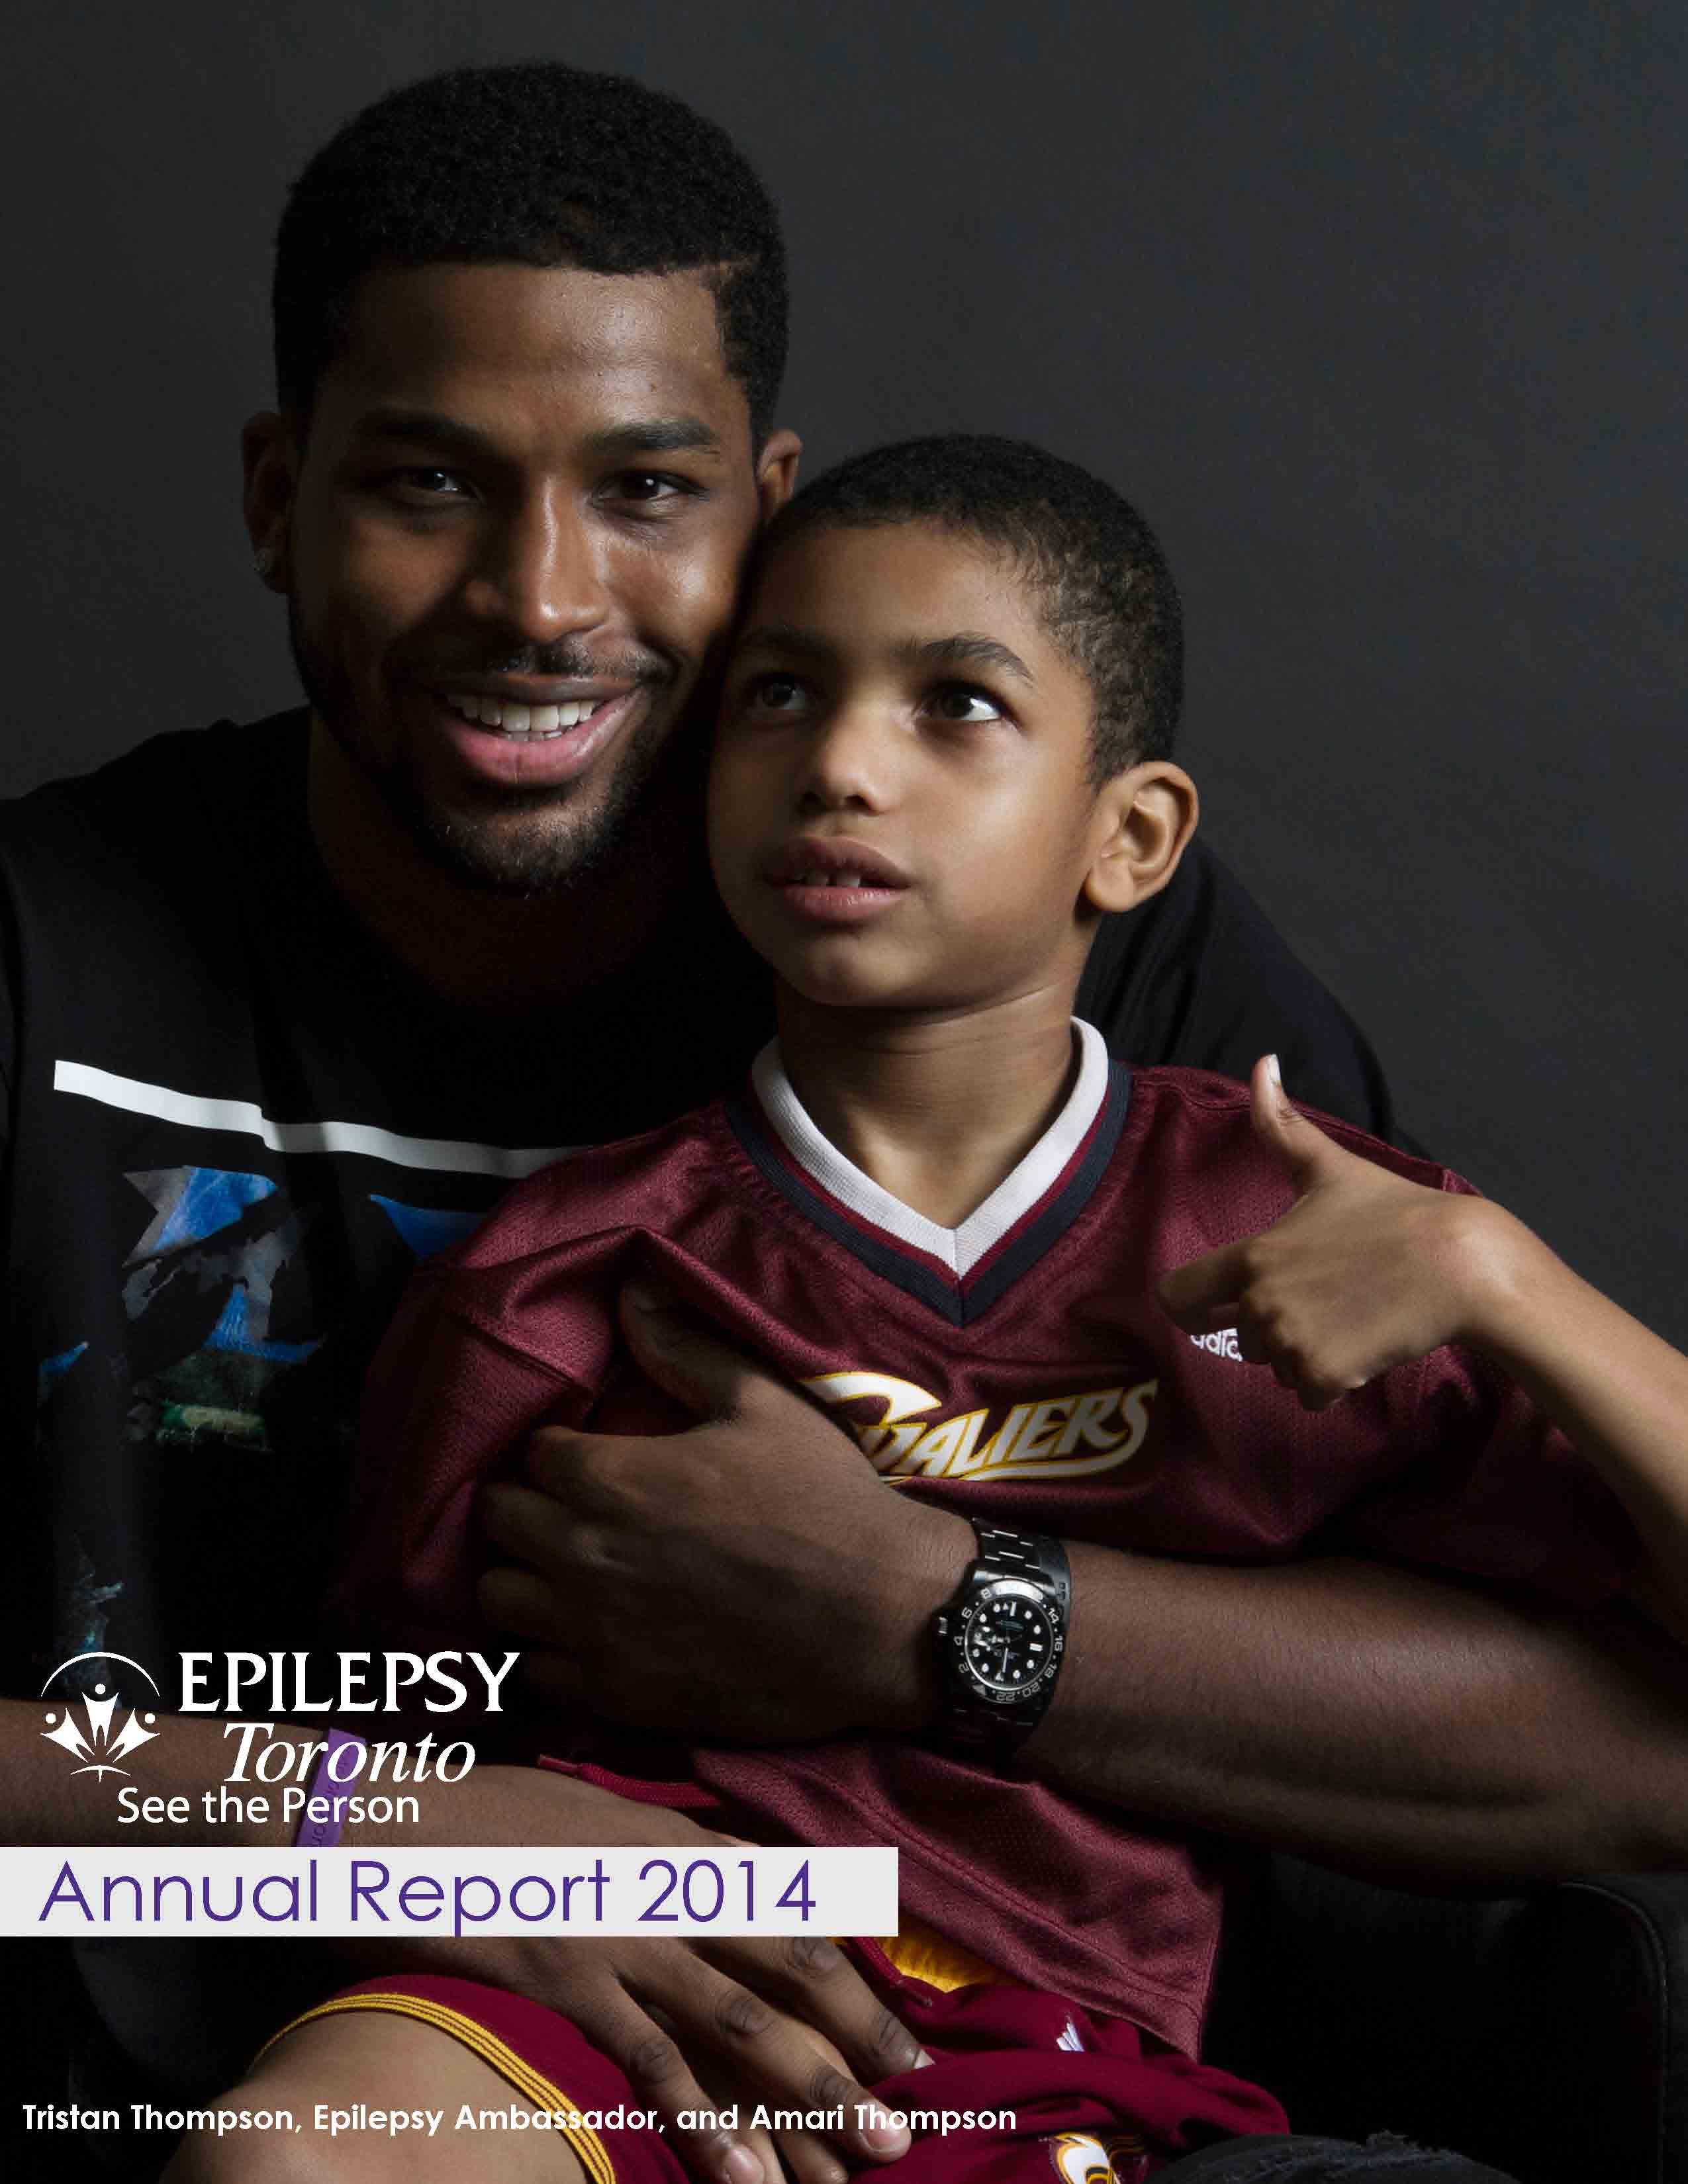 Photo of Tristan Thompson and Amari Thompson on cover page of Epilepsy Toronto 2014 Annual Report